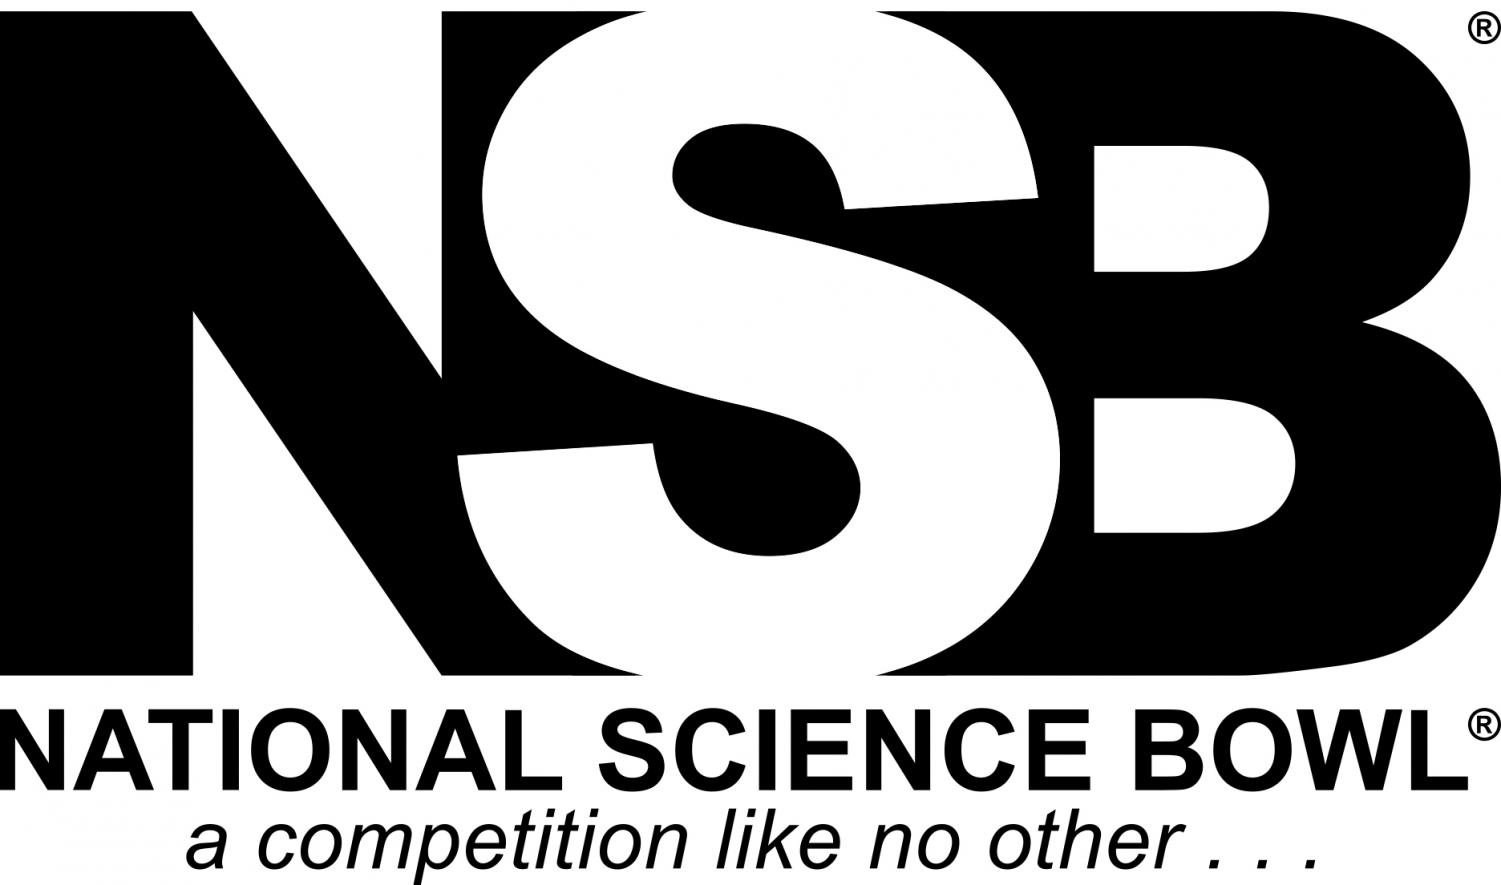 The science bowl logo